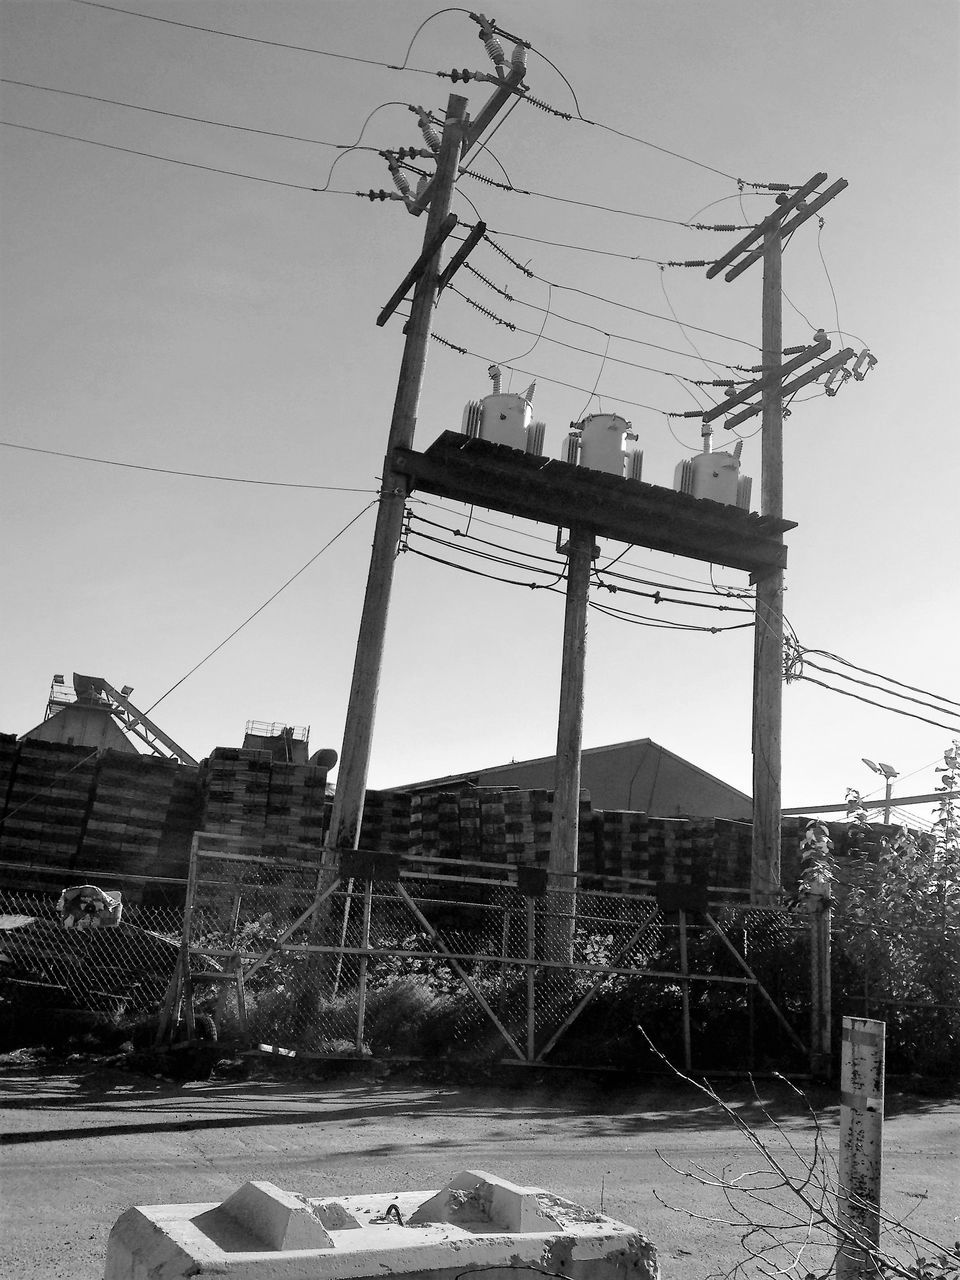 cable, connection, power line, electricity pylon, electricity, power supply, built structure, architecture, sky, technology, outdoors, no people, day, low angle view, building exterior, telephone line